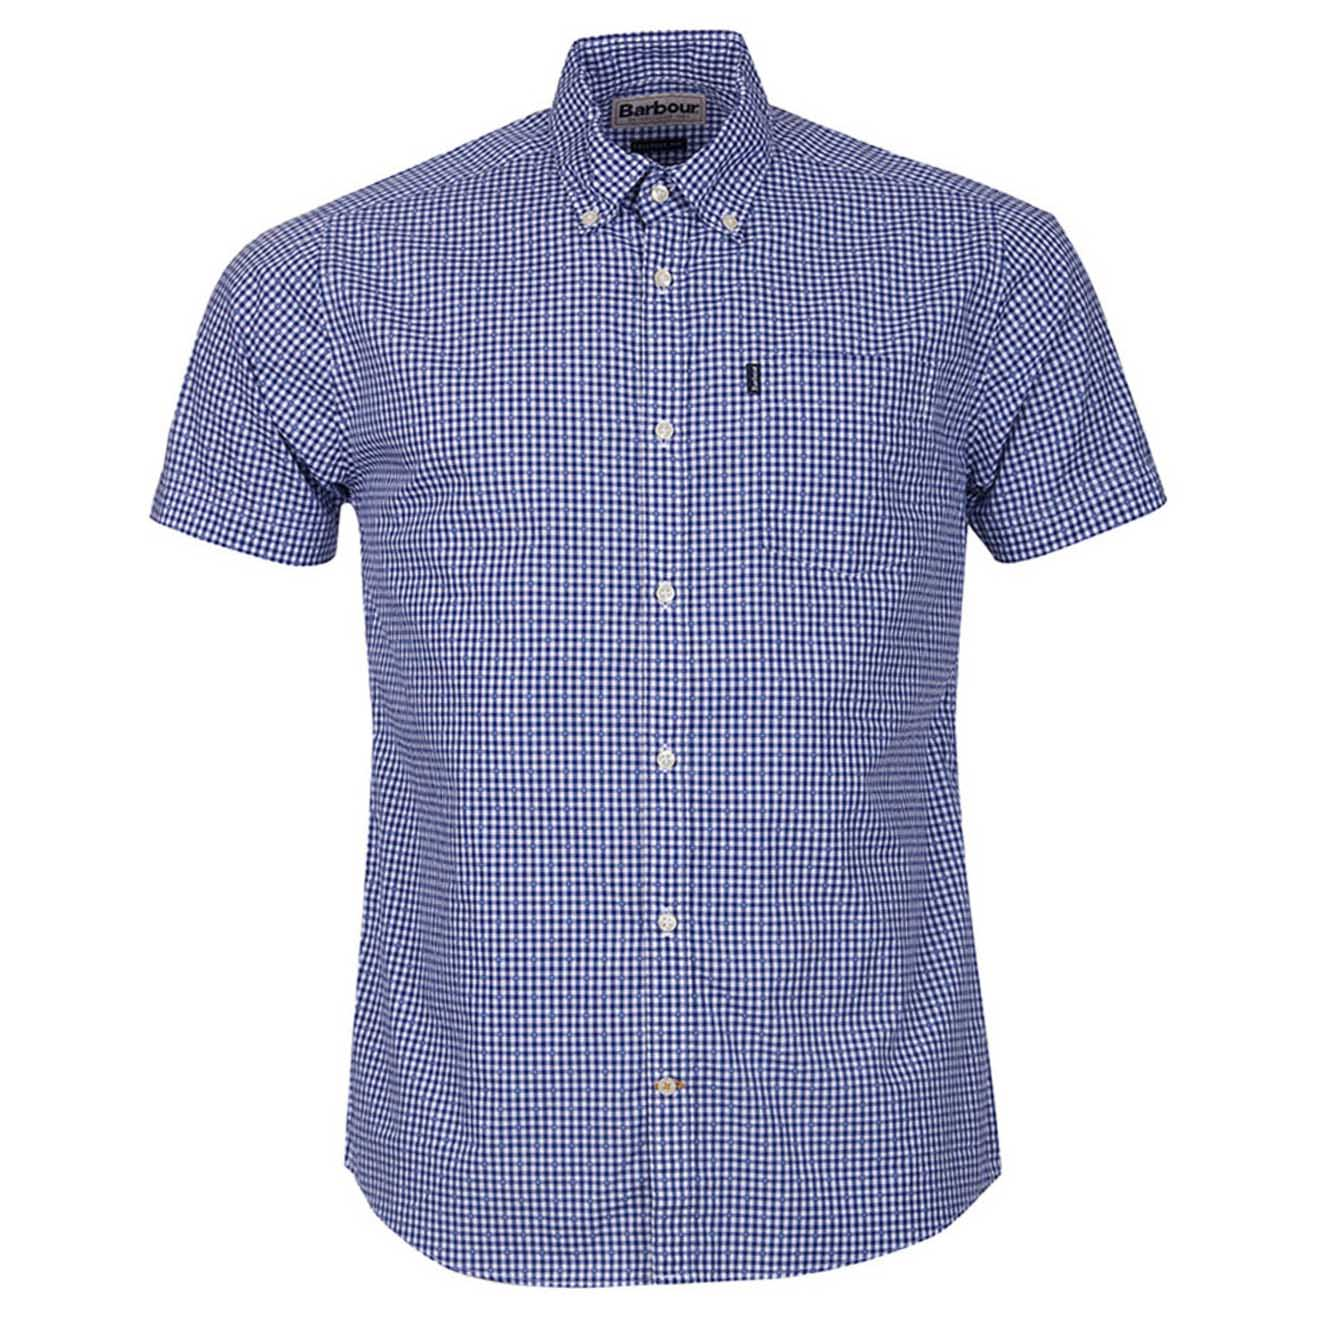 Barbour Hector Short Sleeve Shirt Navy